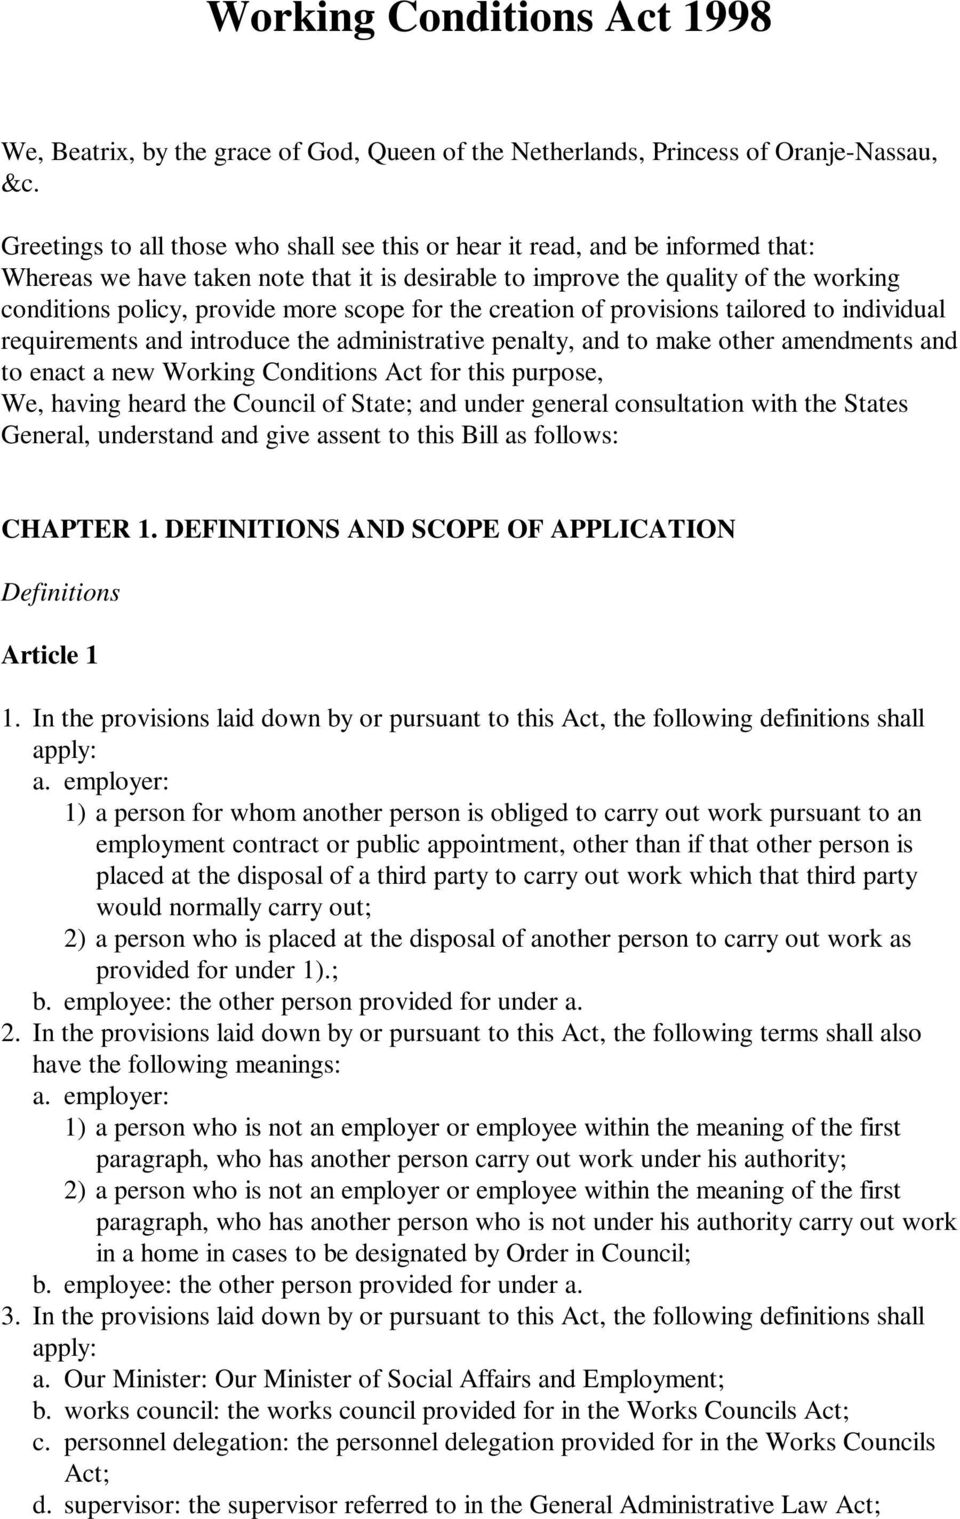 scope for the creation of provisions tailored to individual requirements and introduce the administrative penalty, and to make other amendments and to enact a new Working Conditions Act for this